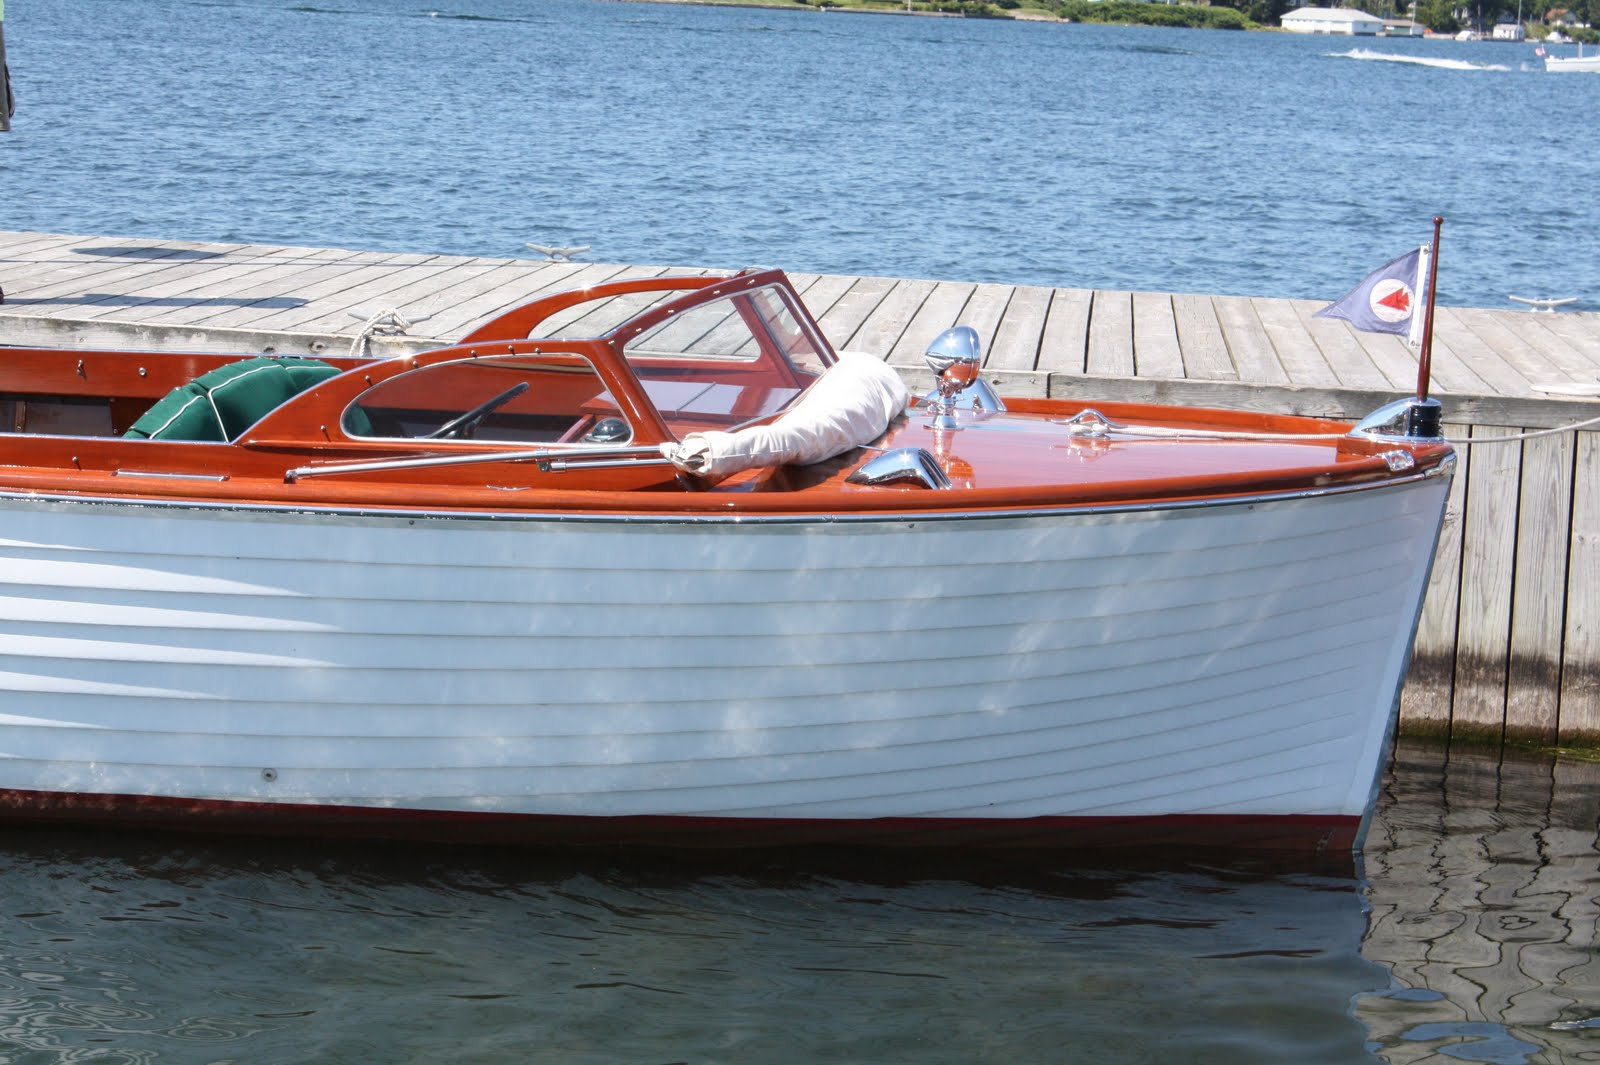 Hocus pocus sea n 39 isle two award winning lymans and for Classic chris craft boats